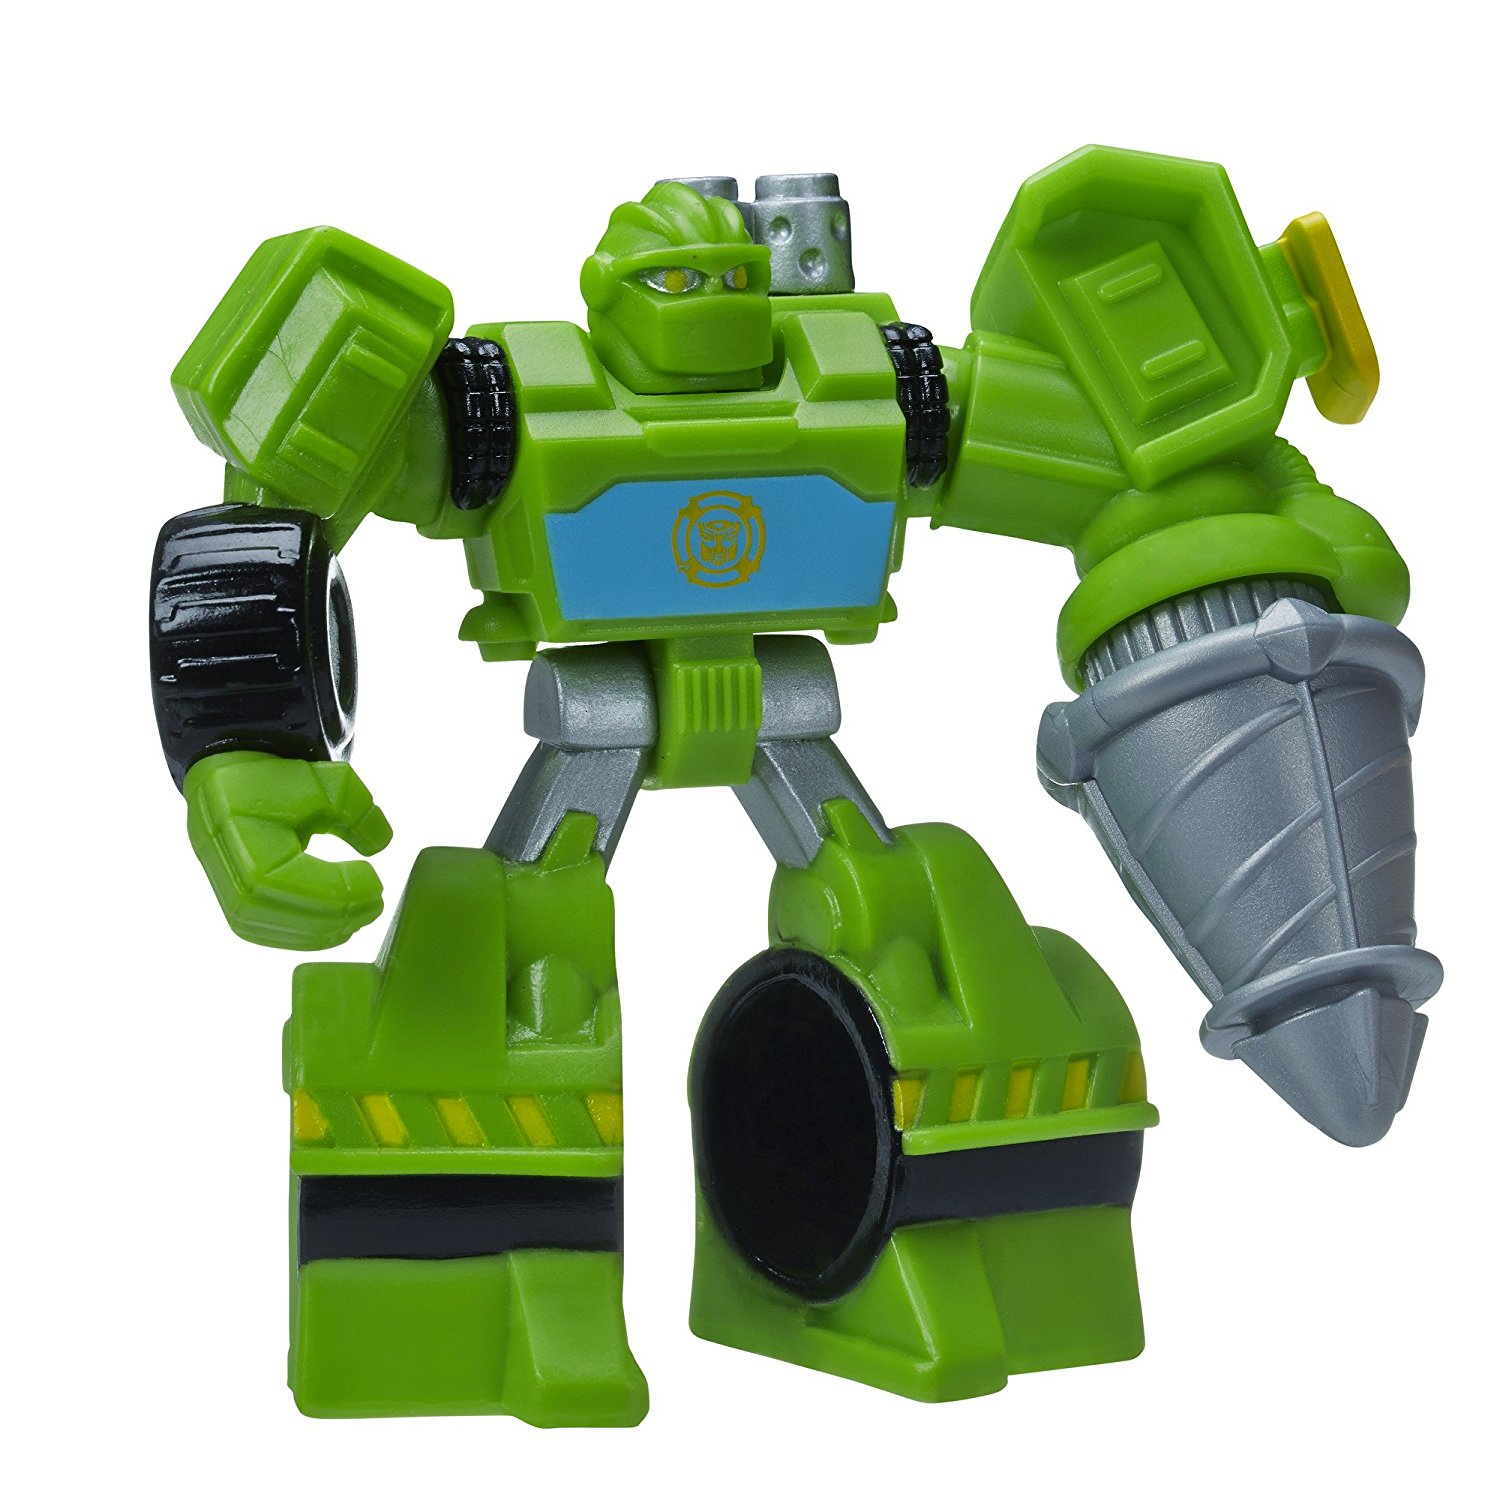 Playskool Heroes, Transformers Rescue Bots, Boulder The Construction-Bot Figure, 3.5 Inches